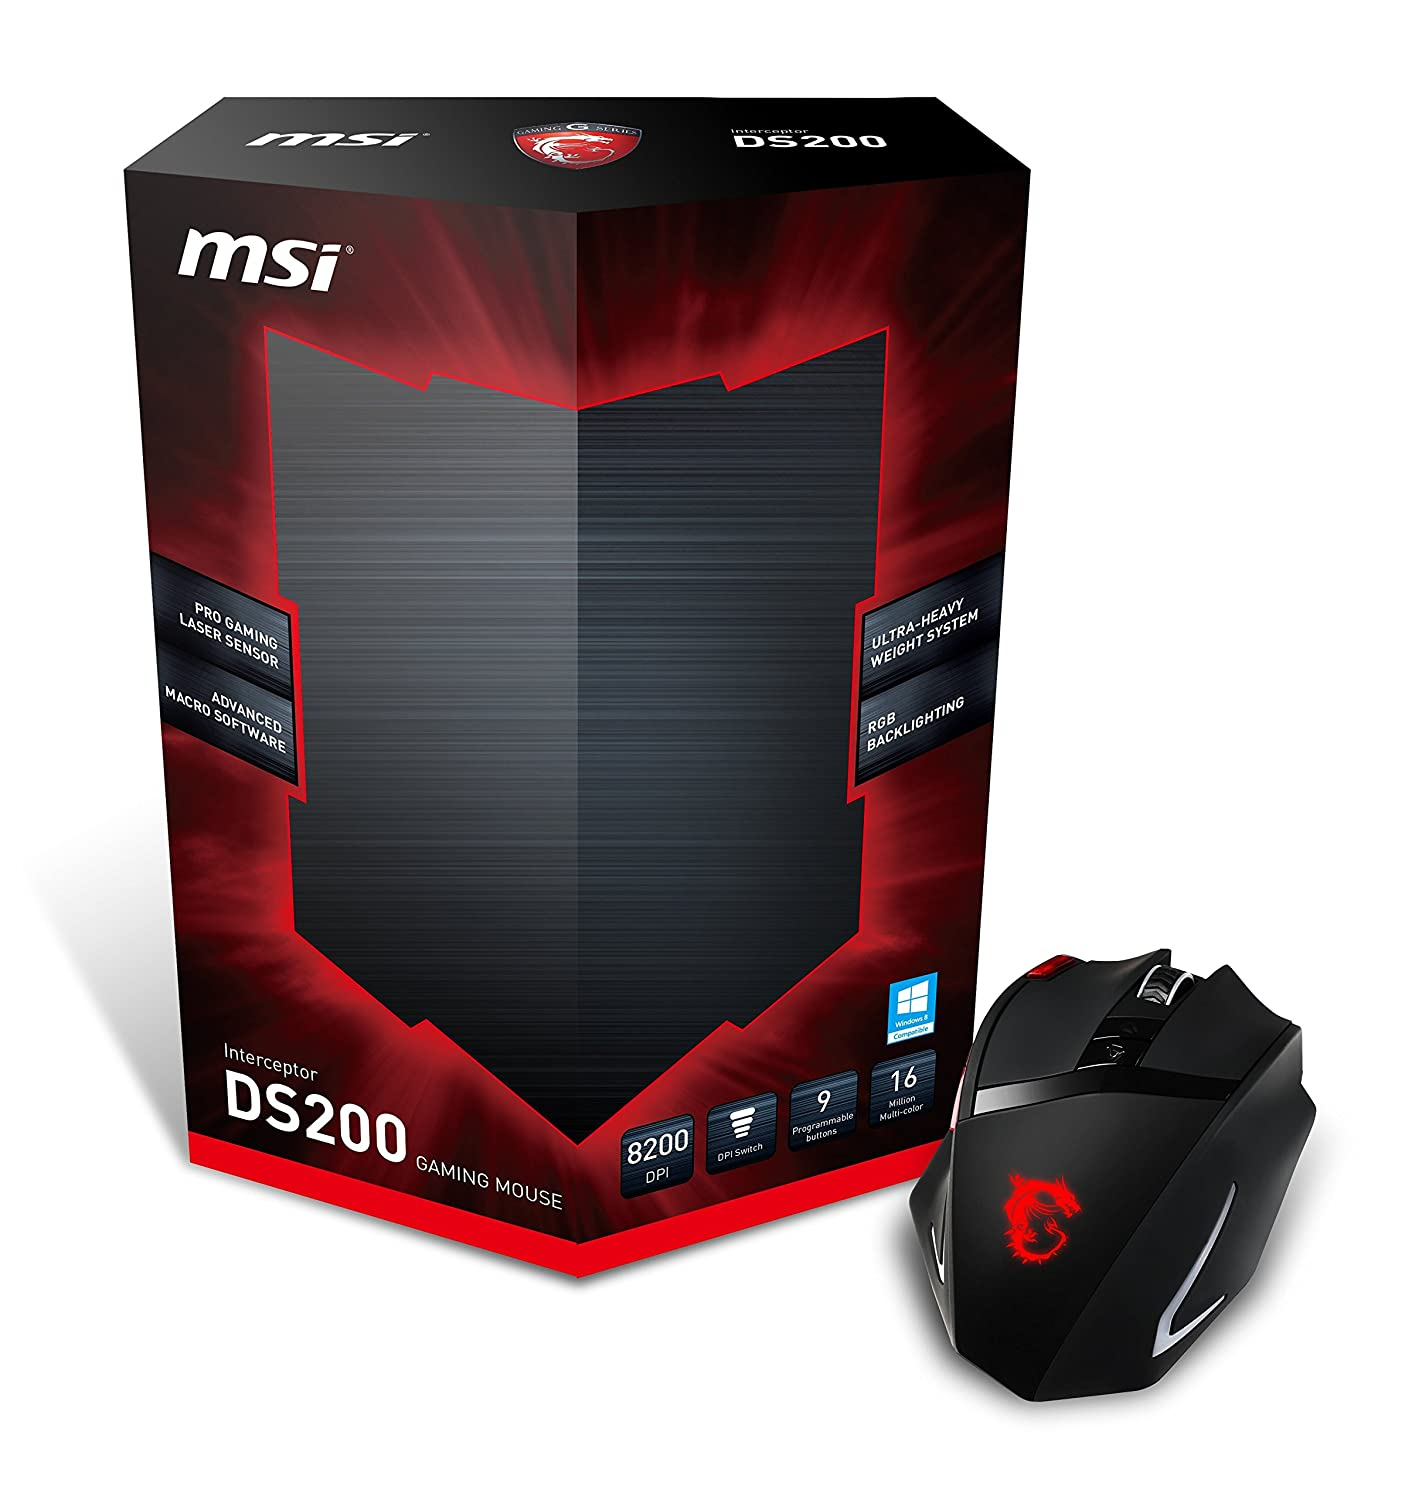 MSI Gaming Mouse Interceptor DS200